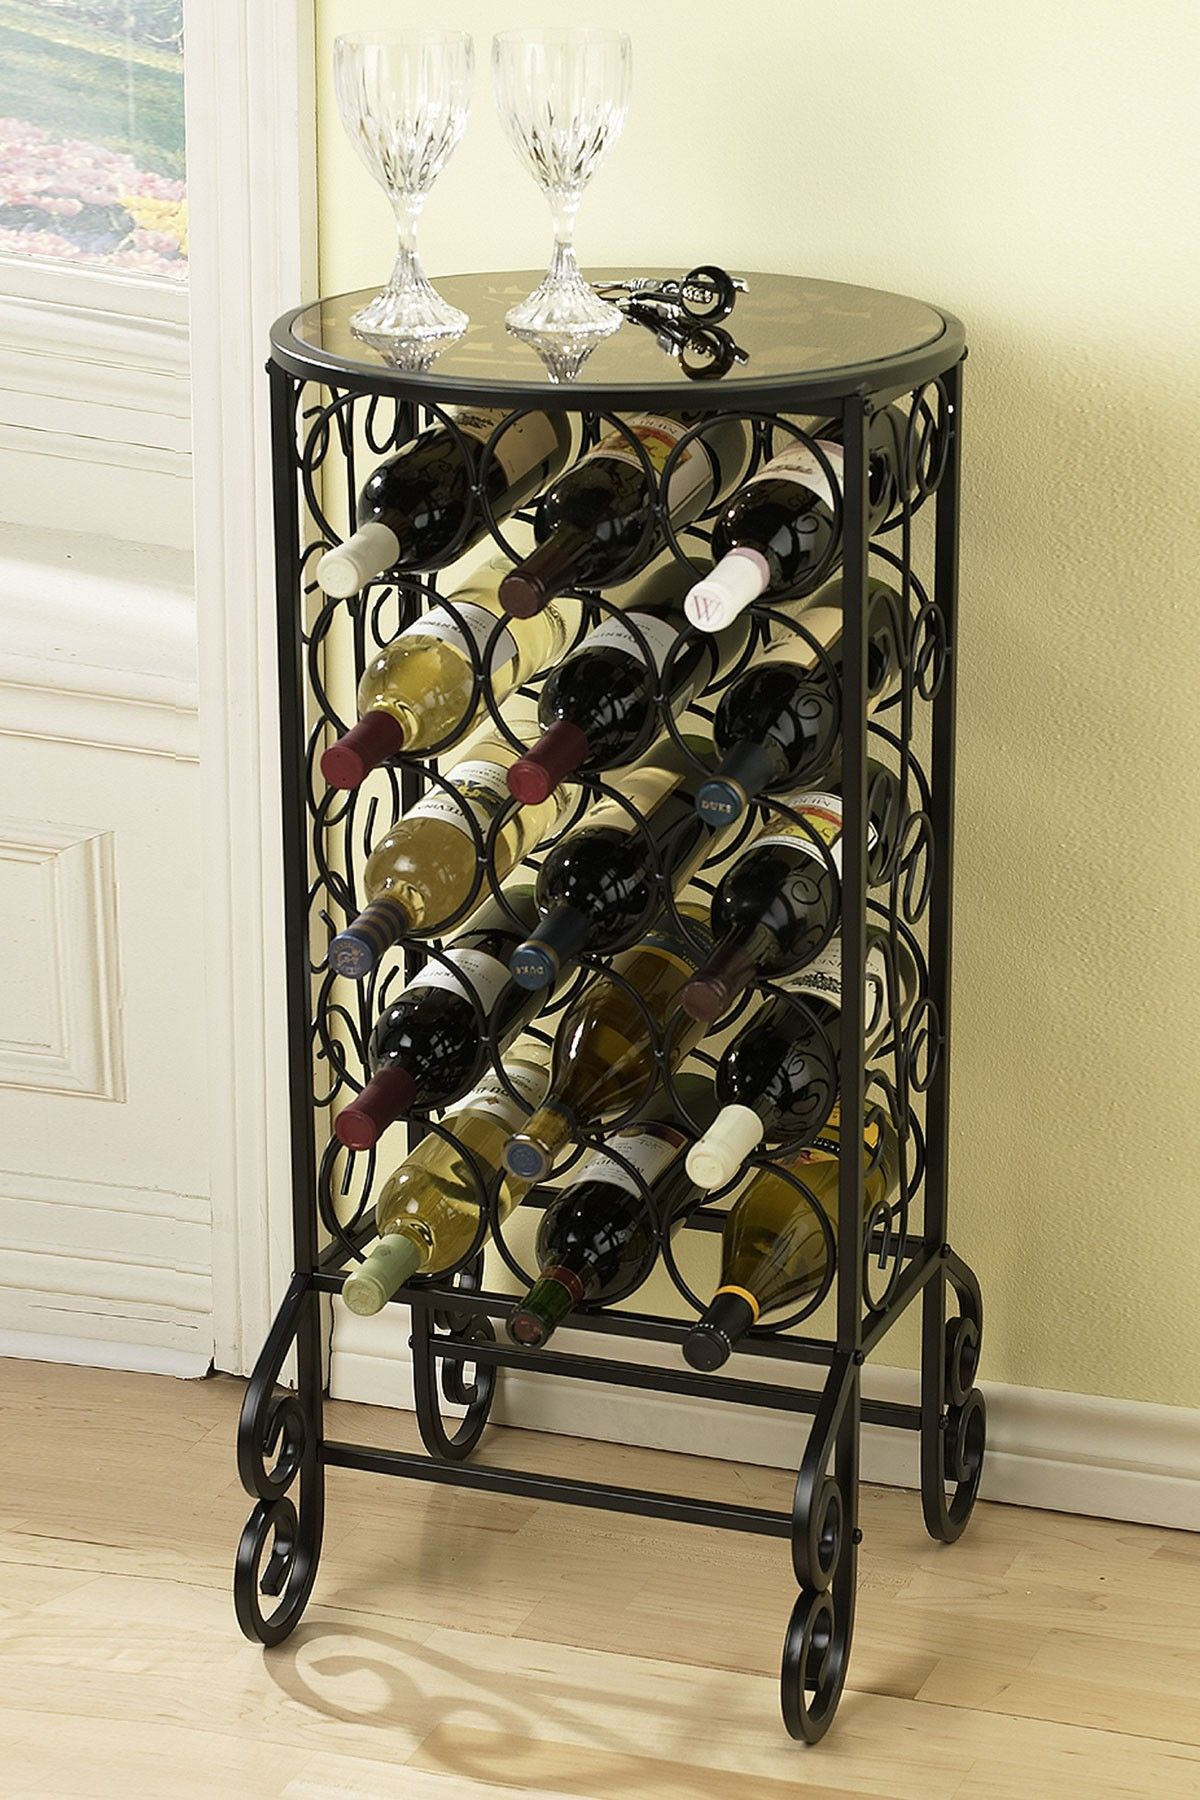 Glass Top Wine Table On At Hautelook Ideas For The House Wine Rack